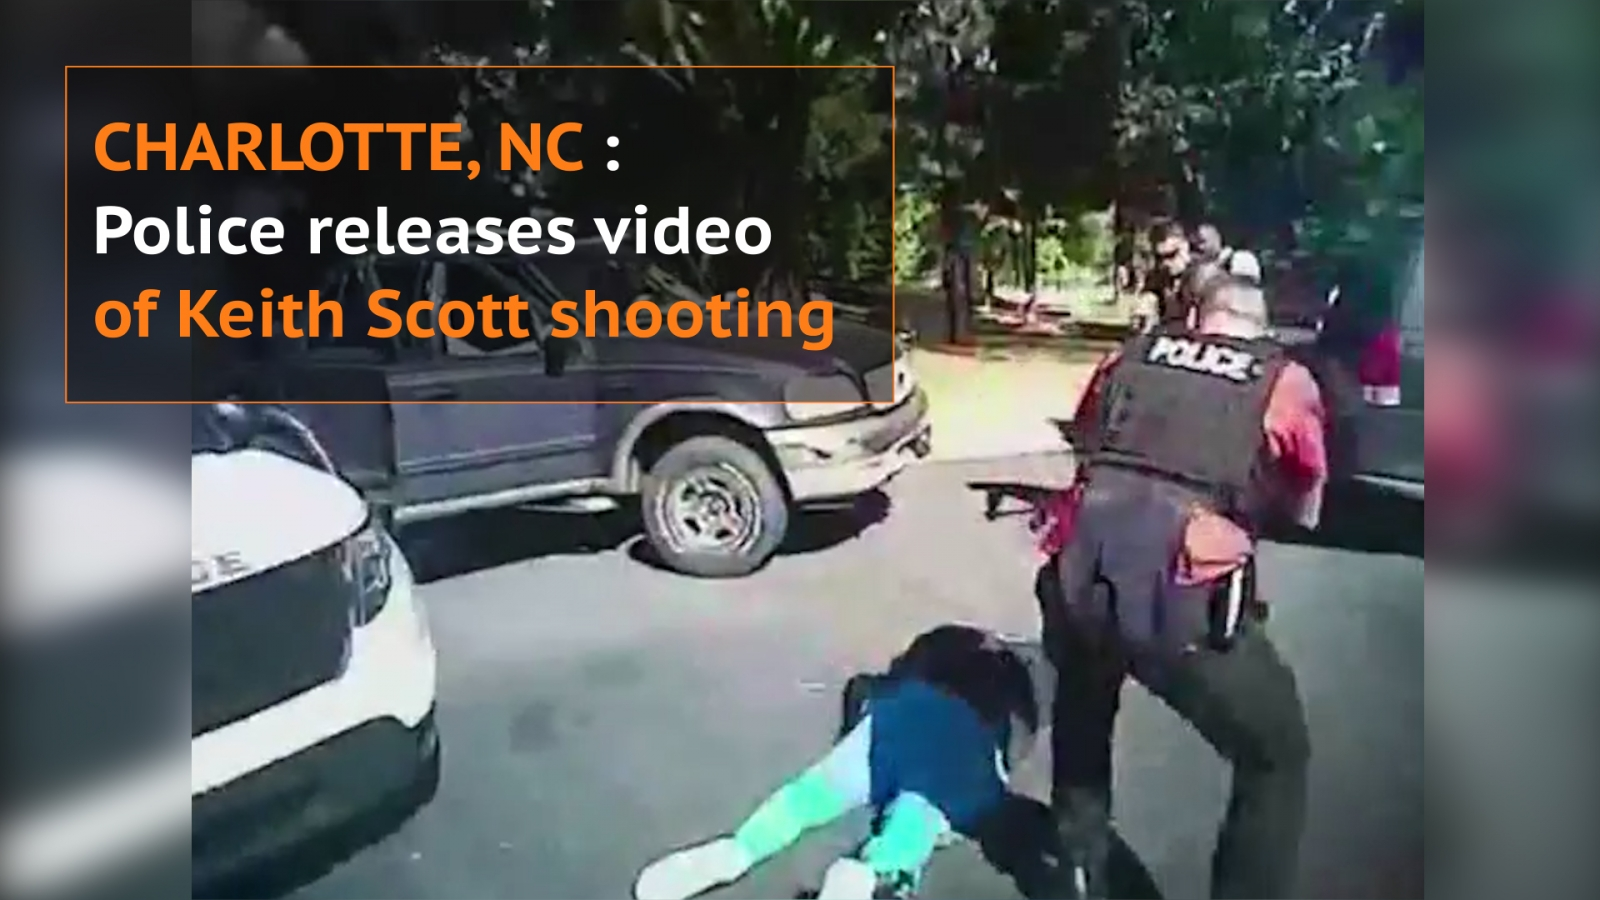 Charlotte police releases video footage of Keith Lamont Scott shooting